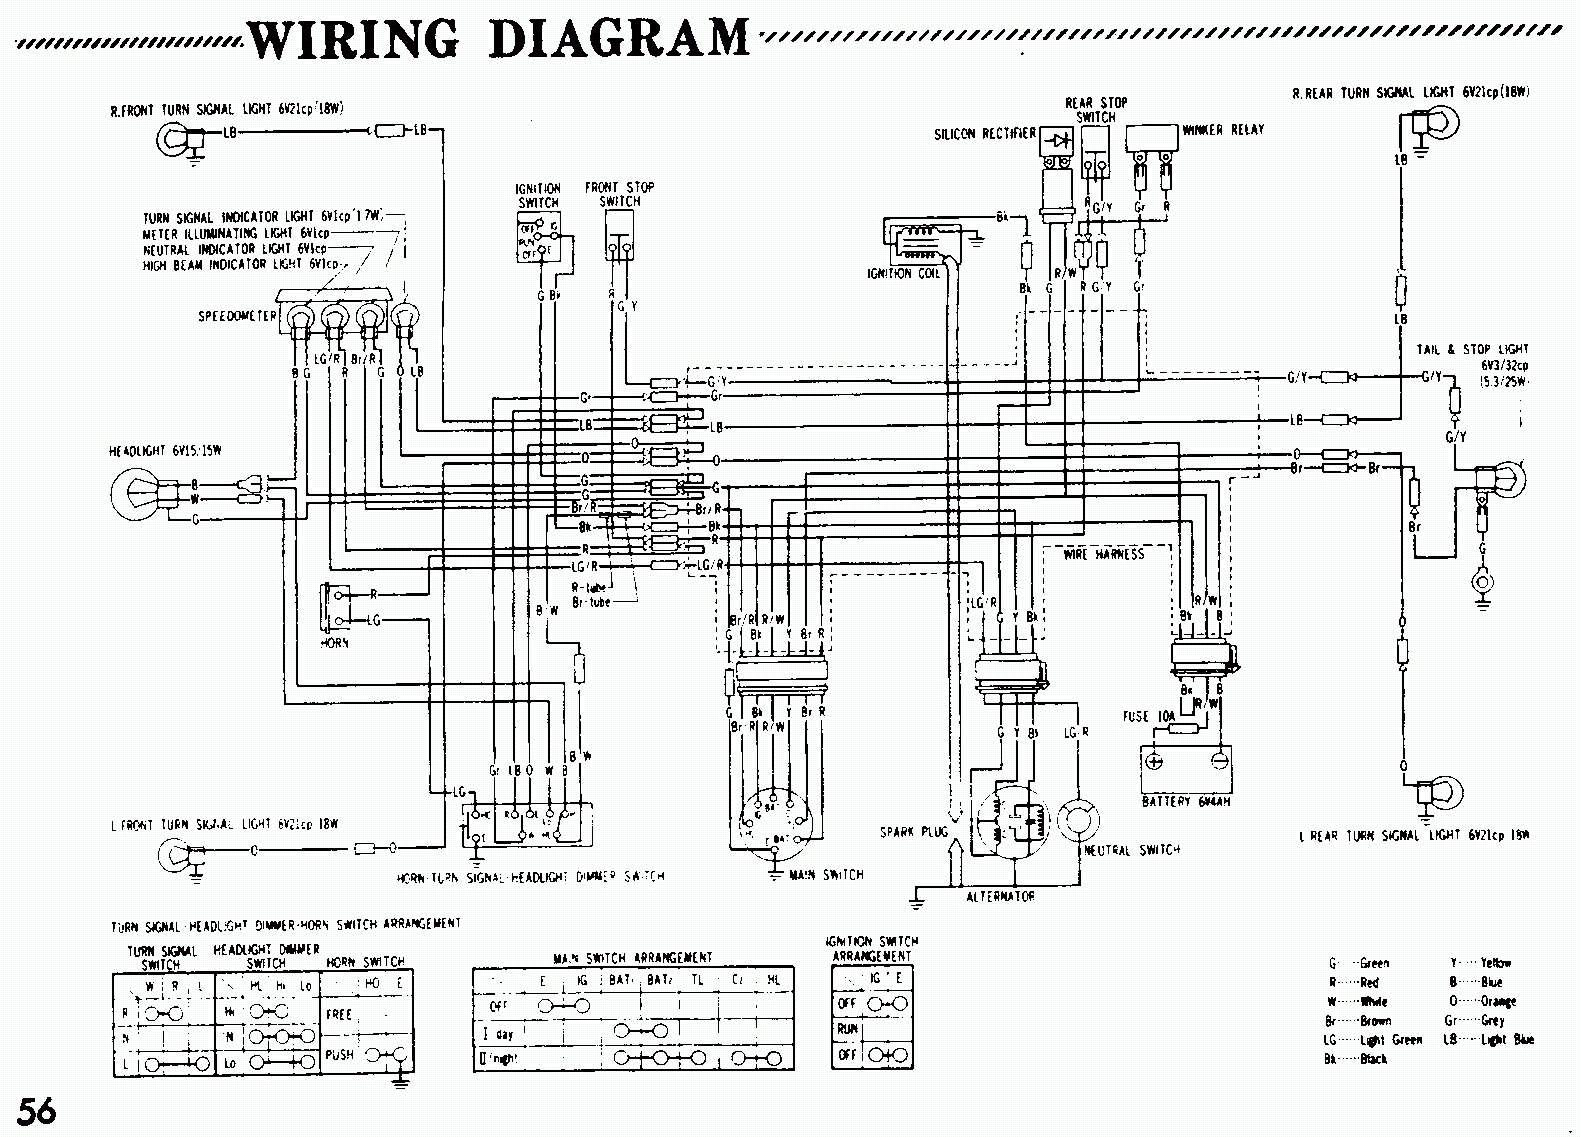 Trail 70 12v Wiring Diagram | Wiring Diagram on car audio install diagrams, auto frame diagrams, auto diagnostics, chevy truck diagrams, auto steering diagrams, auto interior diagrams, blank diagrams, zenith carburetors diagrams, electrical diagrams, auto blueprints, auto chassis, auto rear axle, auto lighting, auto transmission, auto tools, auto air conditioning diagrams, auto schematics, electronic circuit diagrams, auto wiring symbols, auto starter,